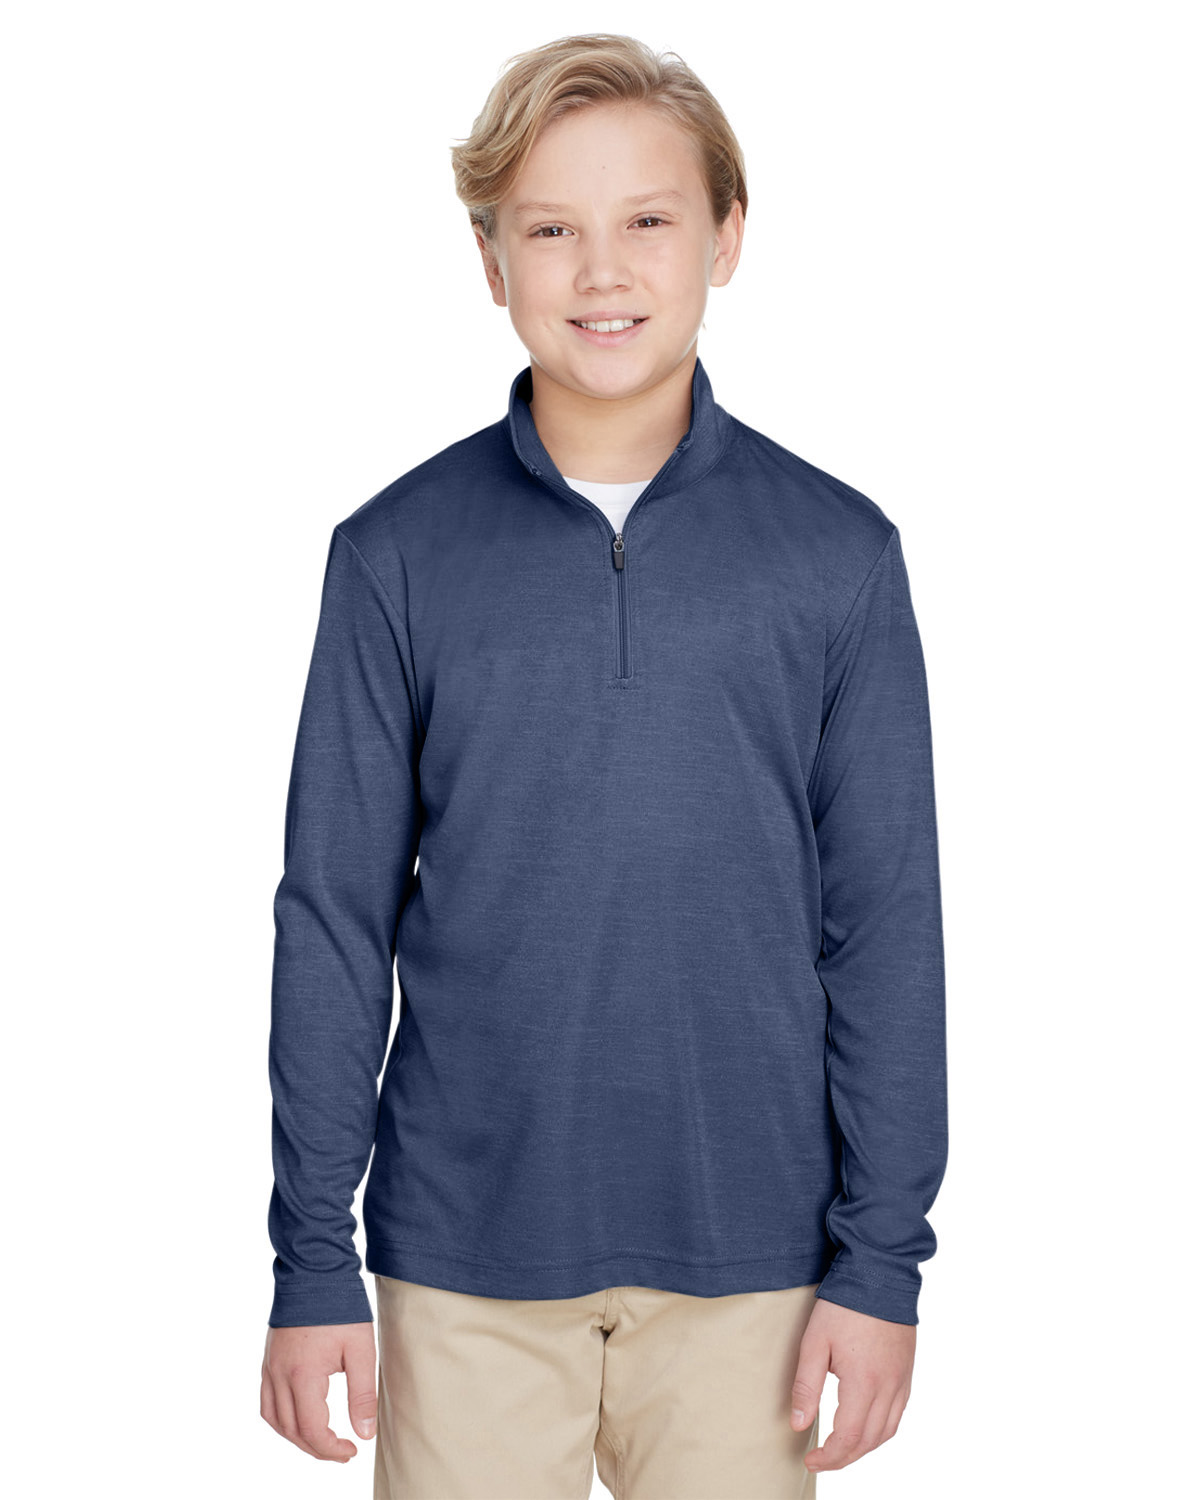 TT31HY TEAM 365 Youth Zone Sonic Heather Performance Quarter-Zip